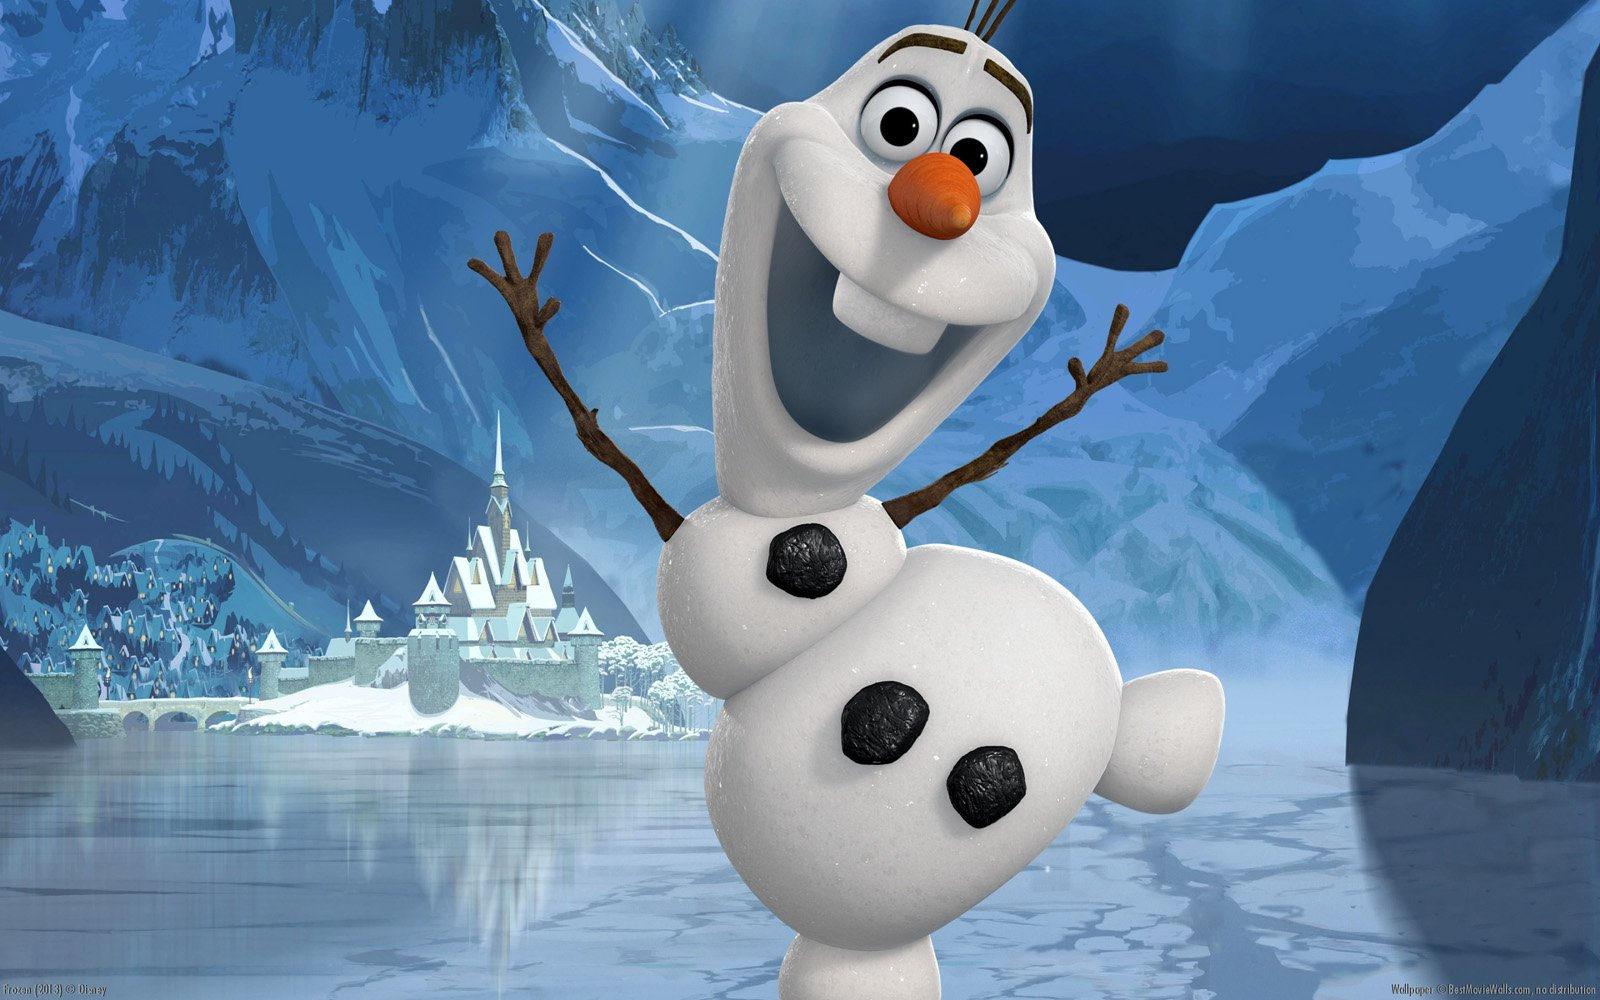 Meet Olaf the Adorable Snowman in Frozen 1600x1000